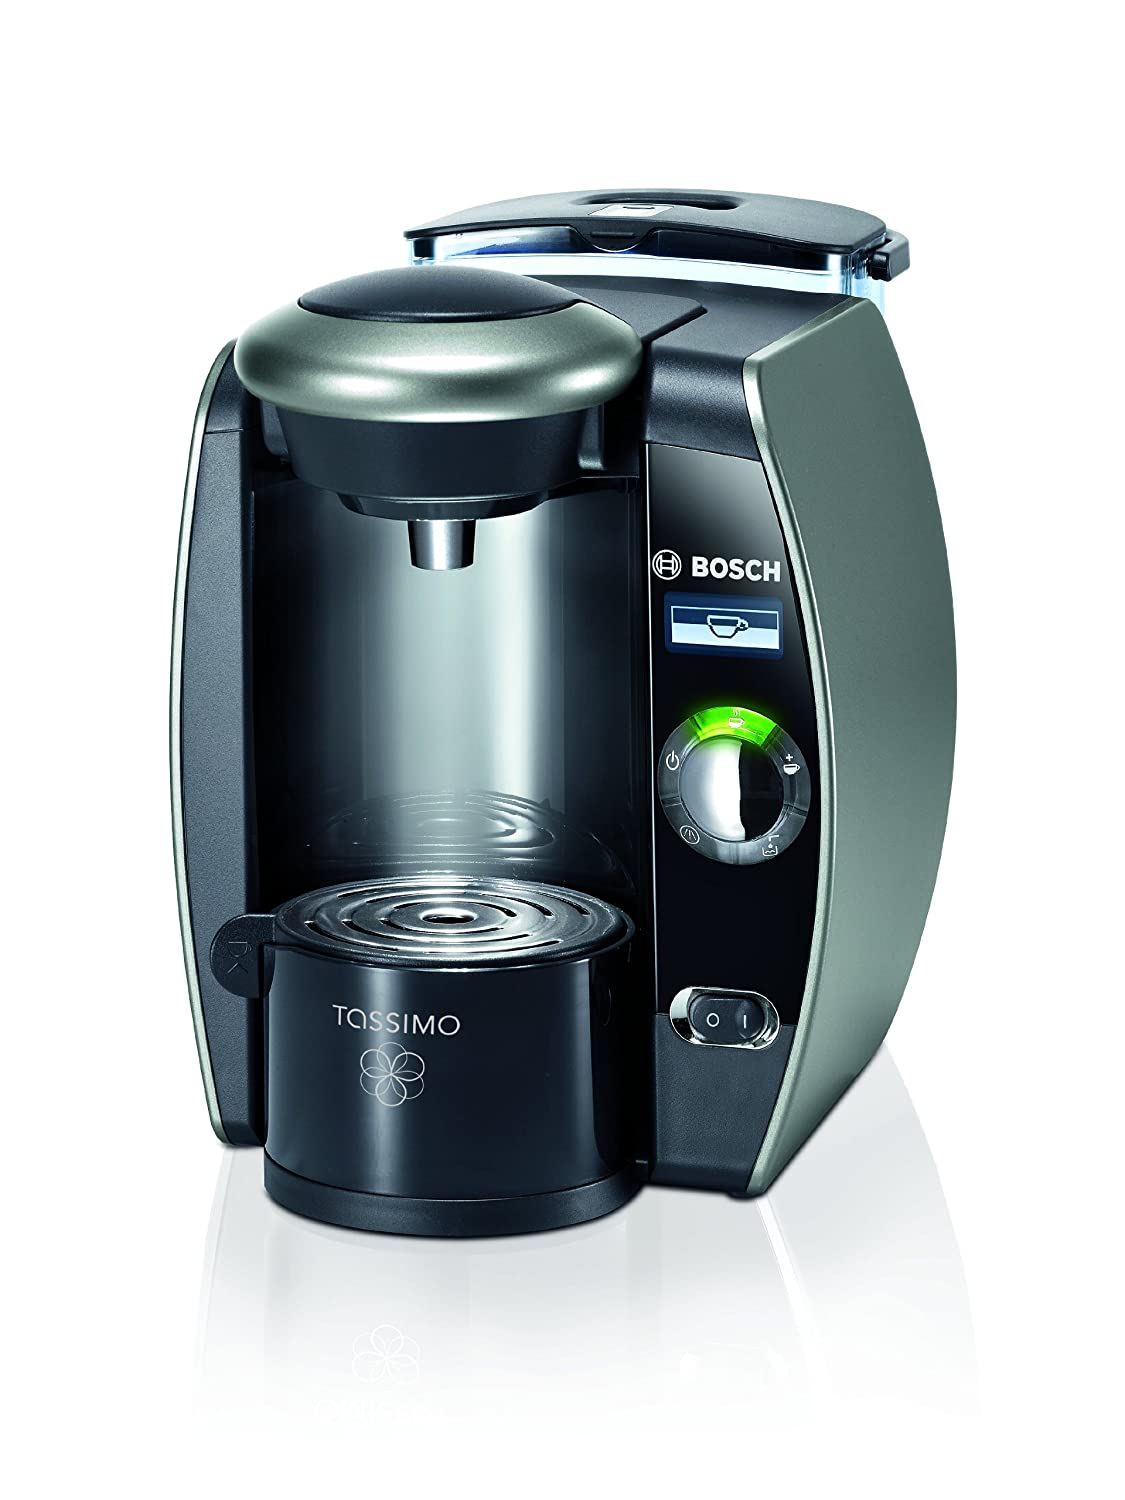 Electronic Tassimo T65 Coffee Machine bosch tas6515uc8 tassimo t65 home brewing system twilight titanium amazon ca kitchen